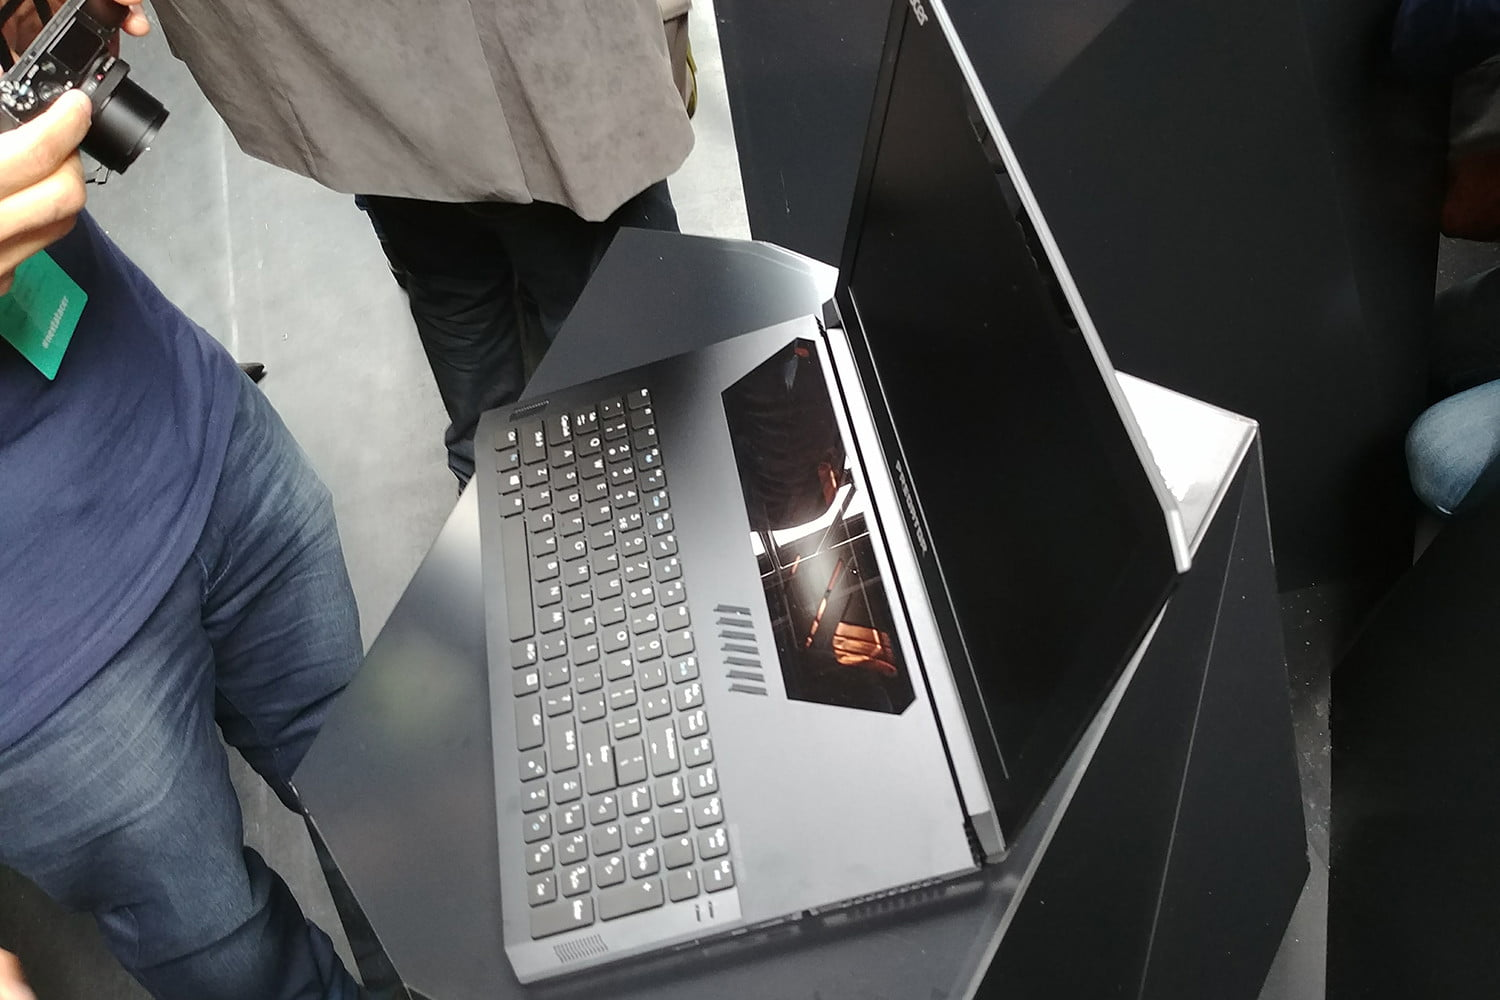 acer triton 700 hands on review 20170427 122716 hdr